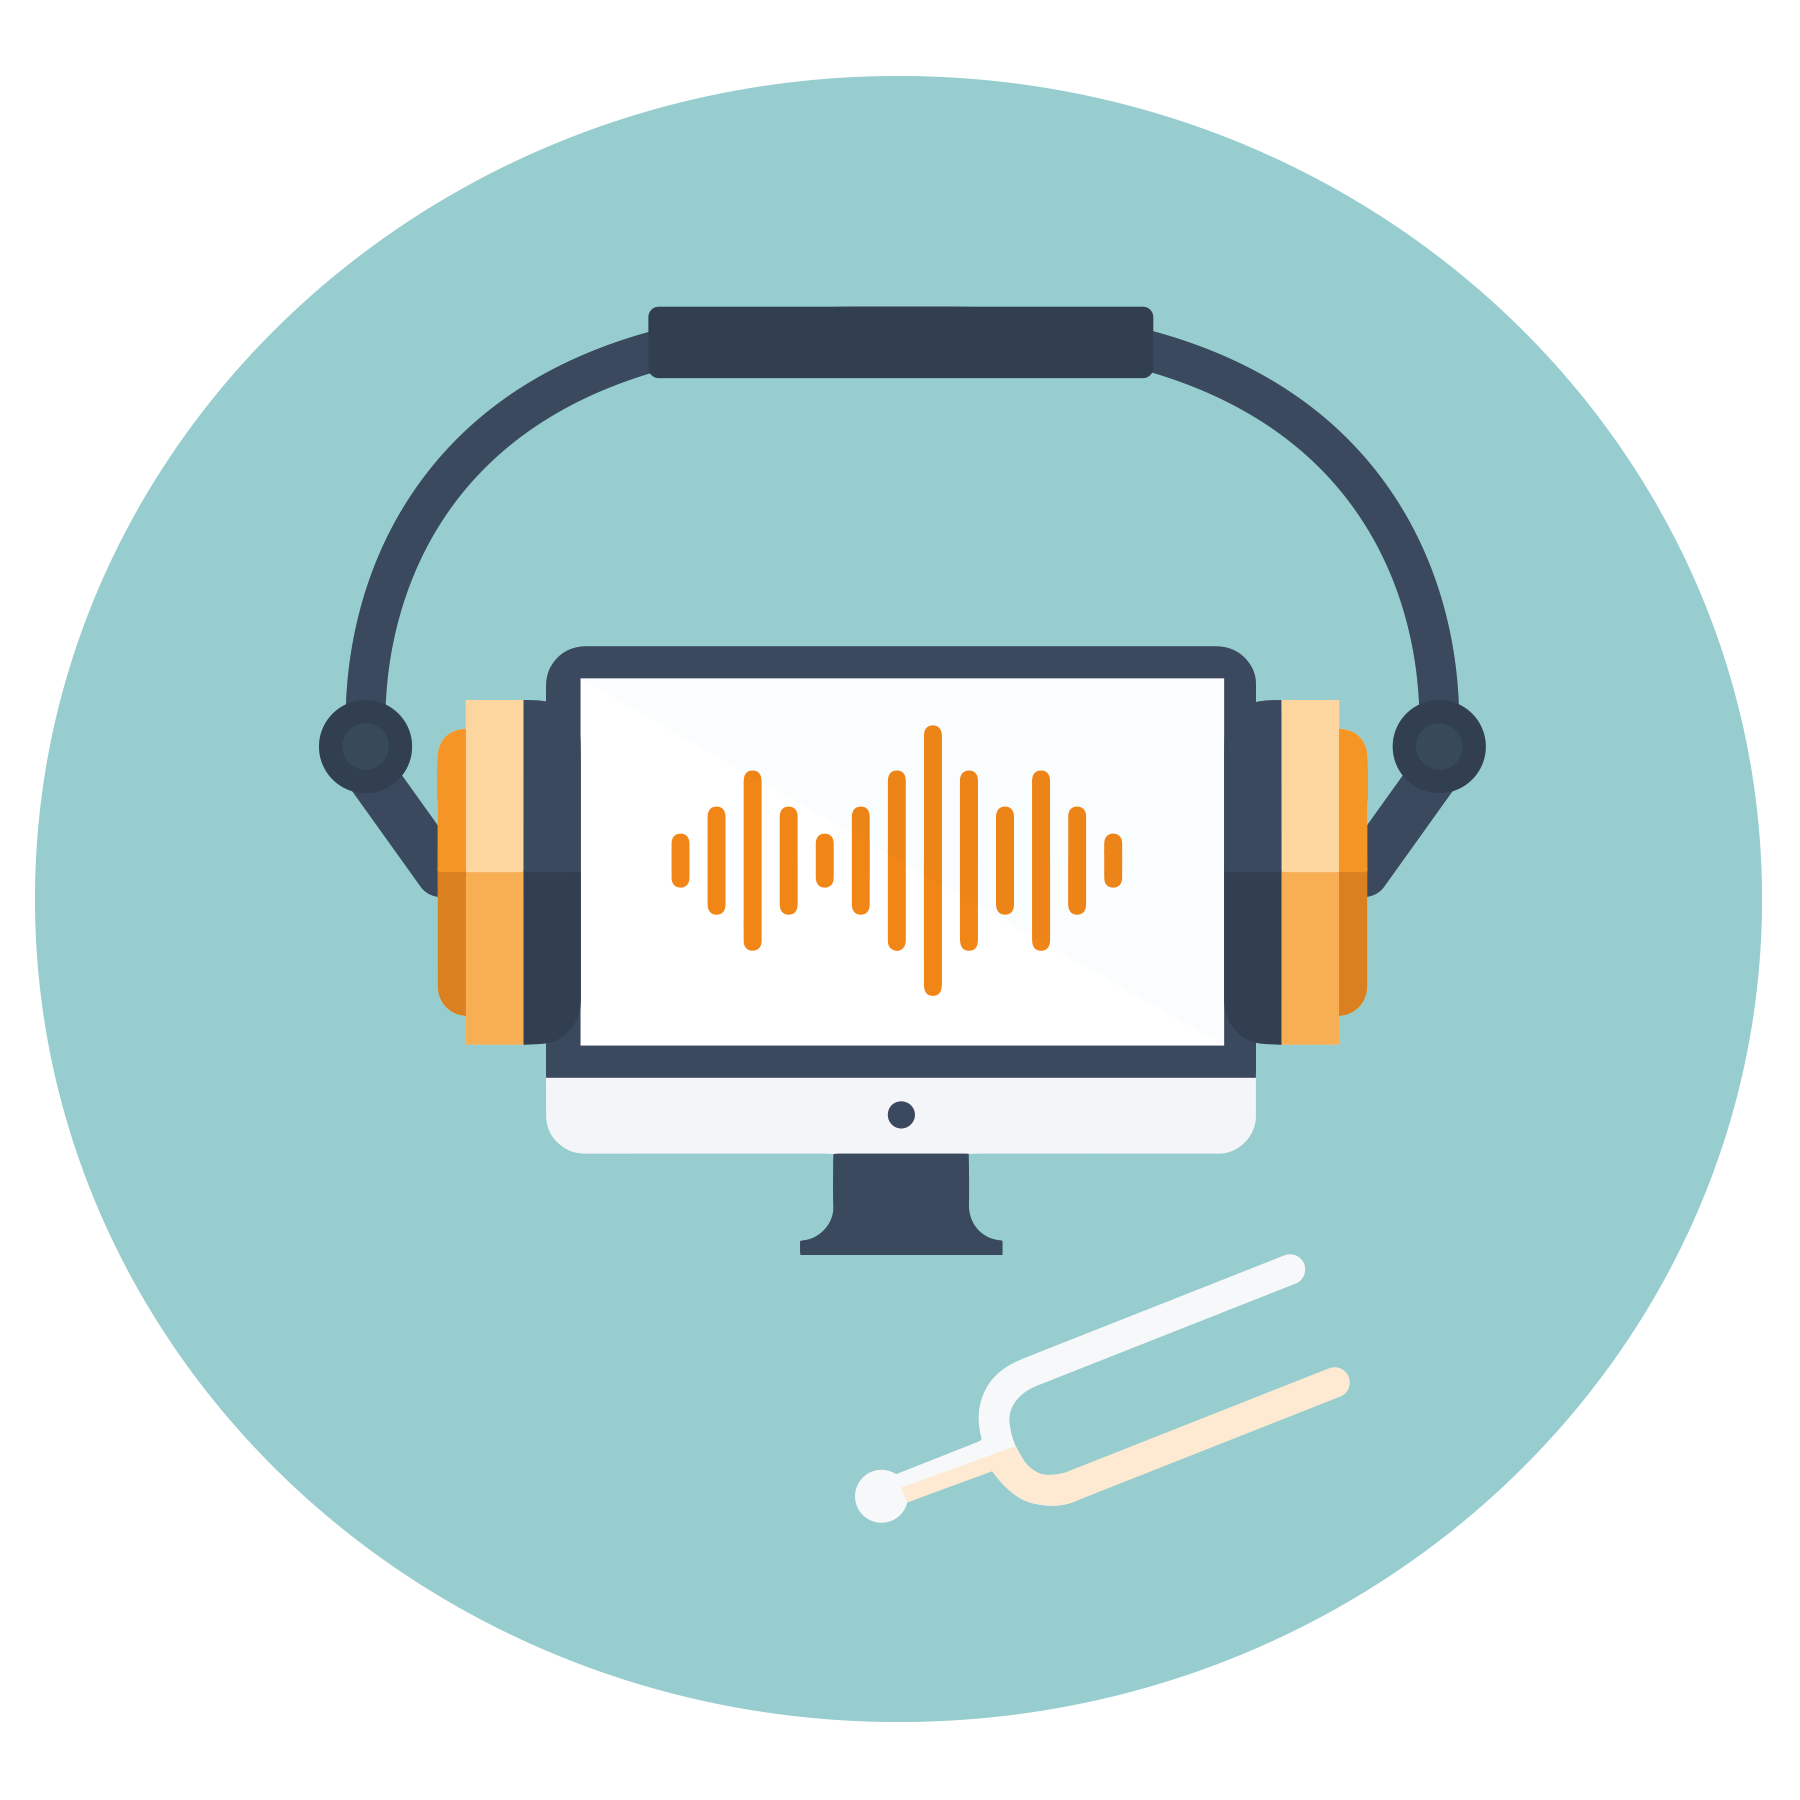 Music transcriber services